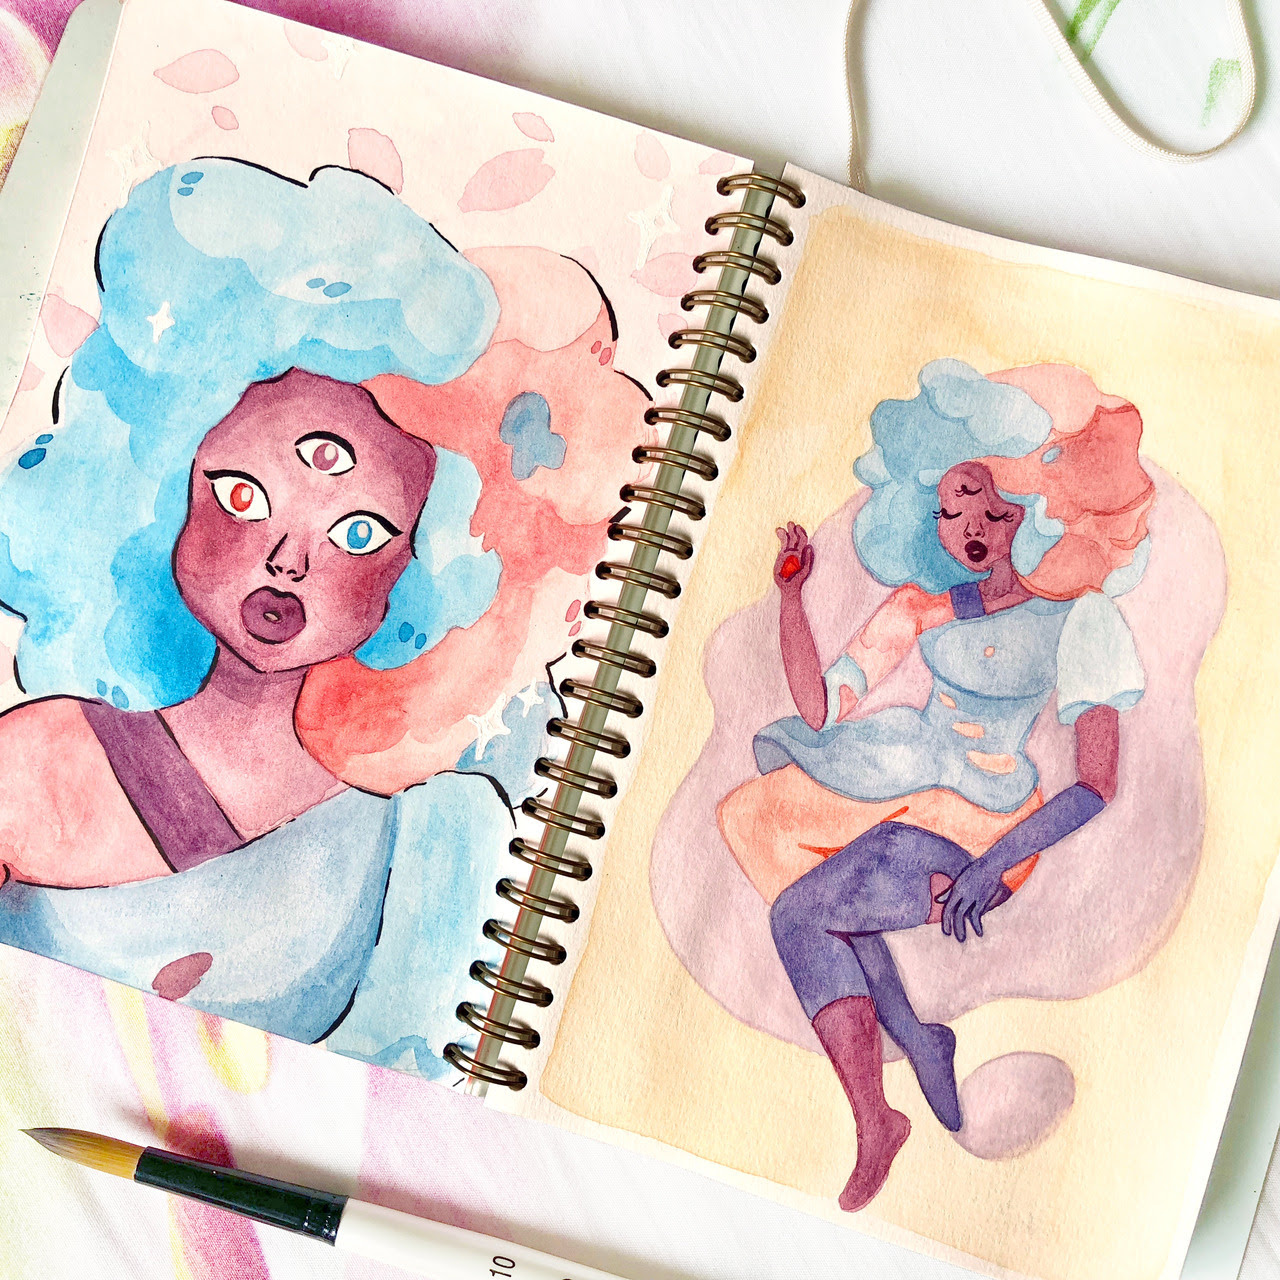 It's another Garnet from The Answer episode! Because she's sooo pretty in her cotton candy colours, and also a beautiful representation of the first encounter of new love, I can't get enough of her.